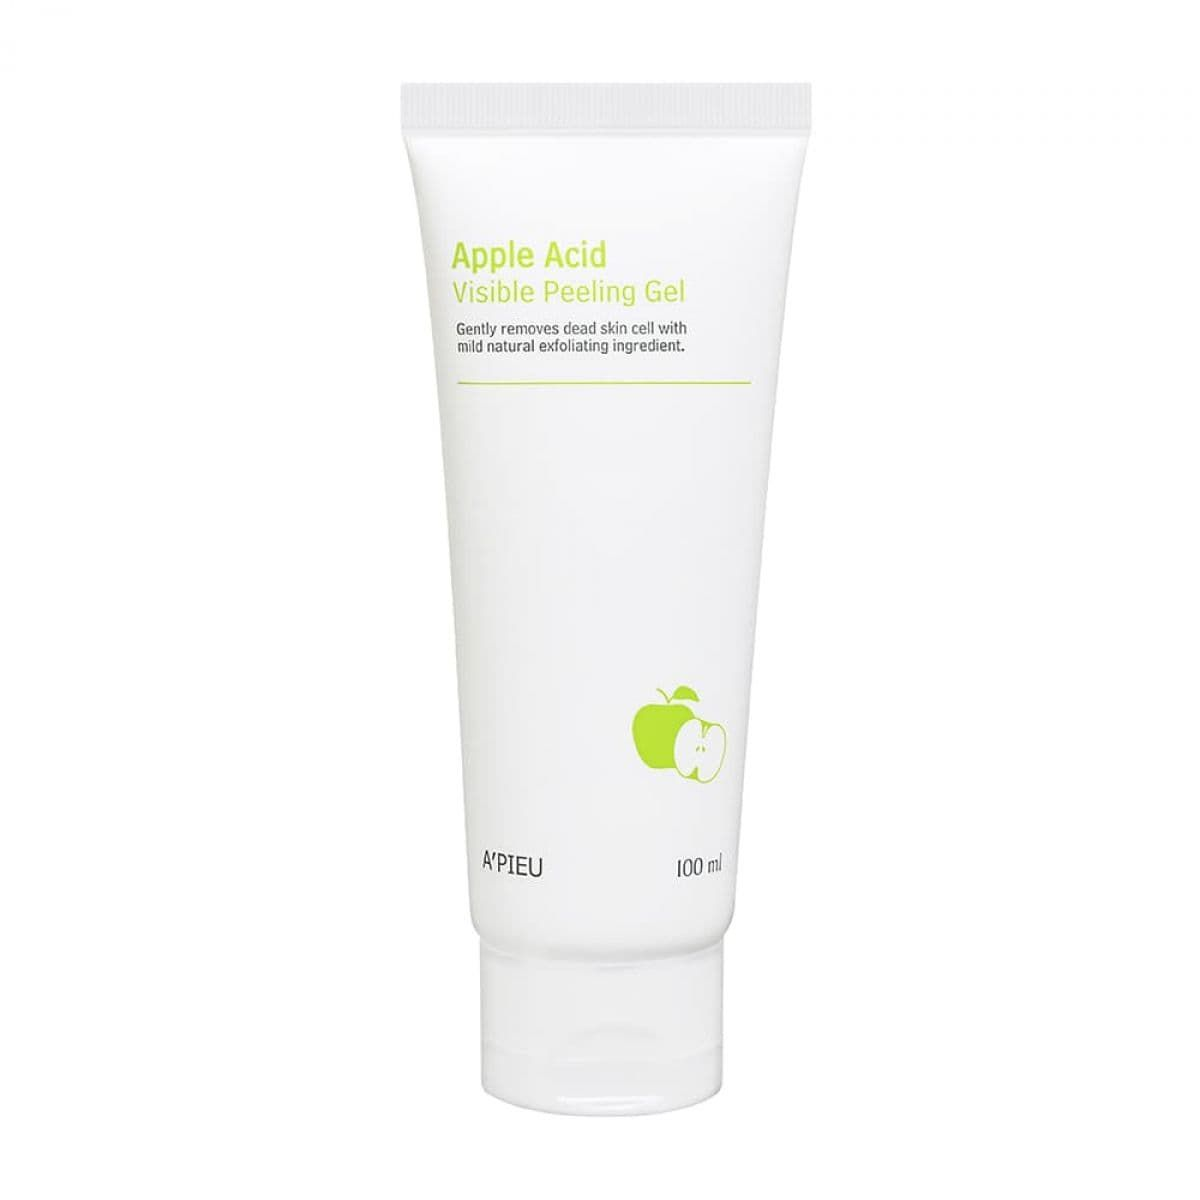 Пилинг-гель для лица с экстрактом яблока A'PIEU Apple Acid Visible Peeling Gel - 100 мл